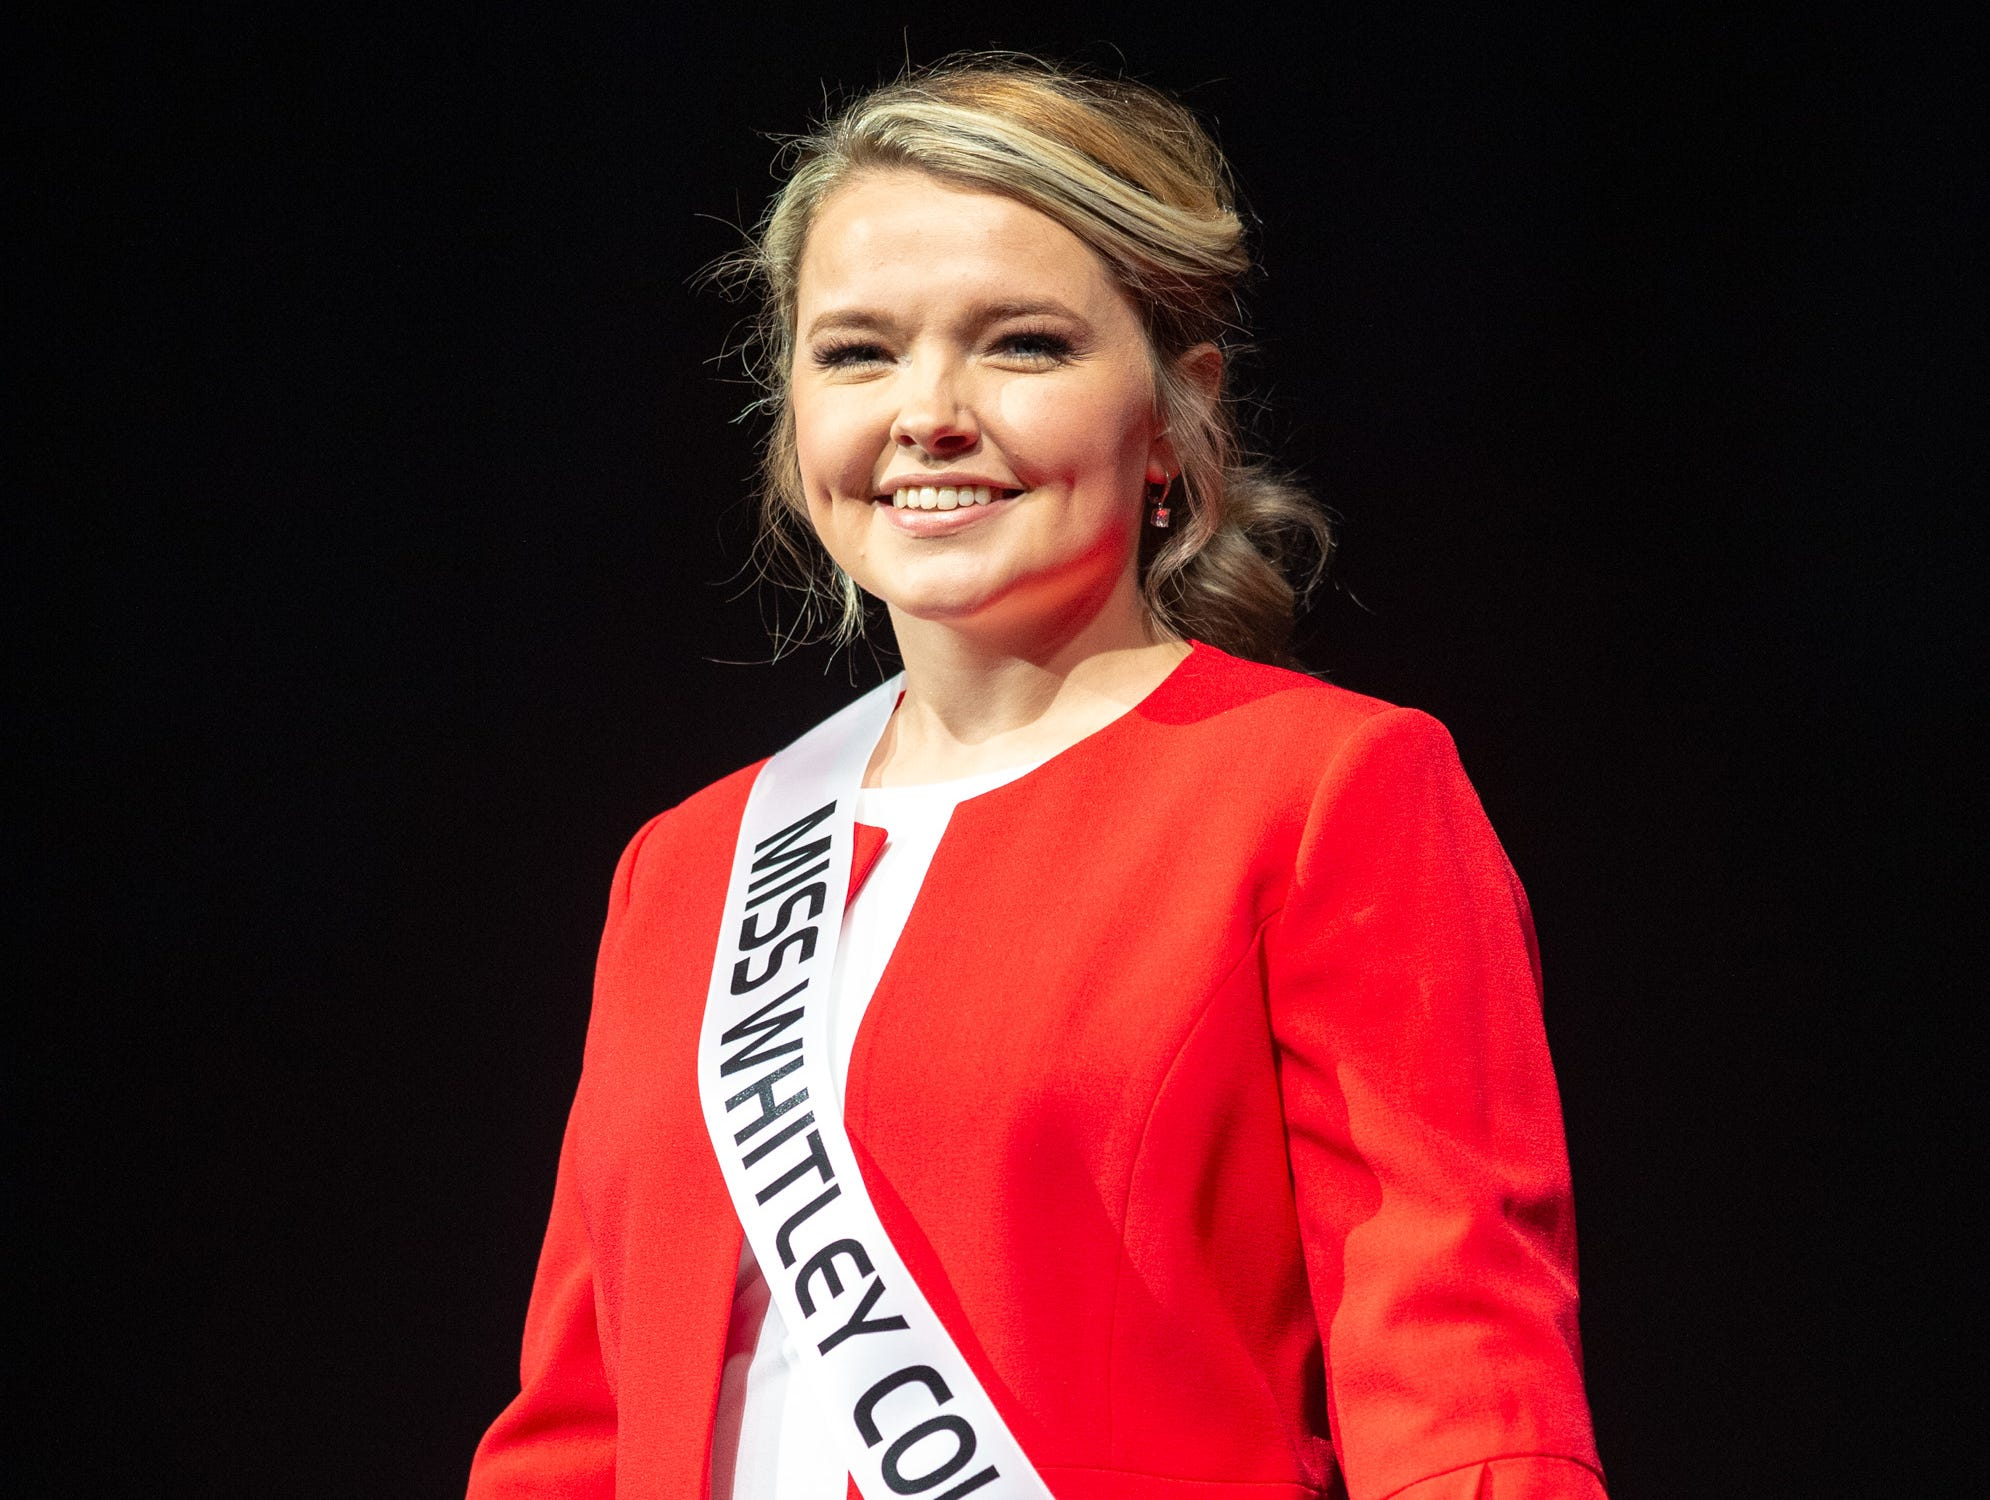 Miss Whitley County, Mackenzie Sheets, during the 61st Indiana State Fair Queen Pageant at the Indiana State Fairgrounds in Indianapolis on Sunday, Jan. 6, 2019. Miss Benton County, Halle Shoults, was crowned the 2019 Indiana State Fair Queen.